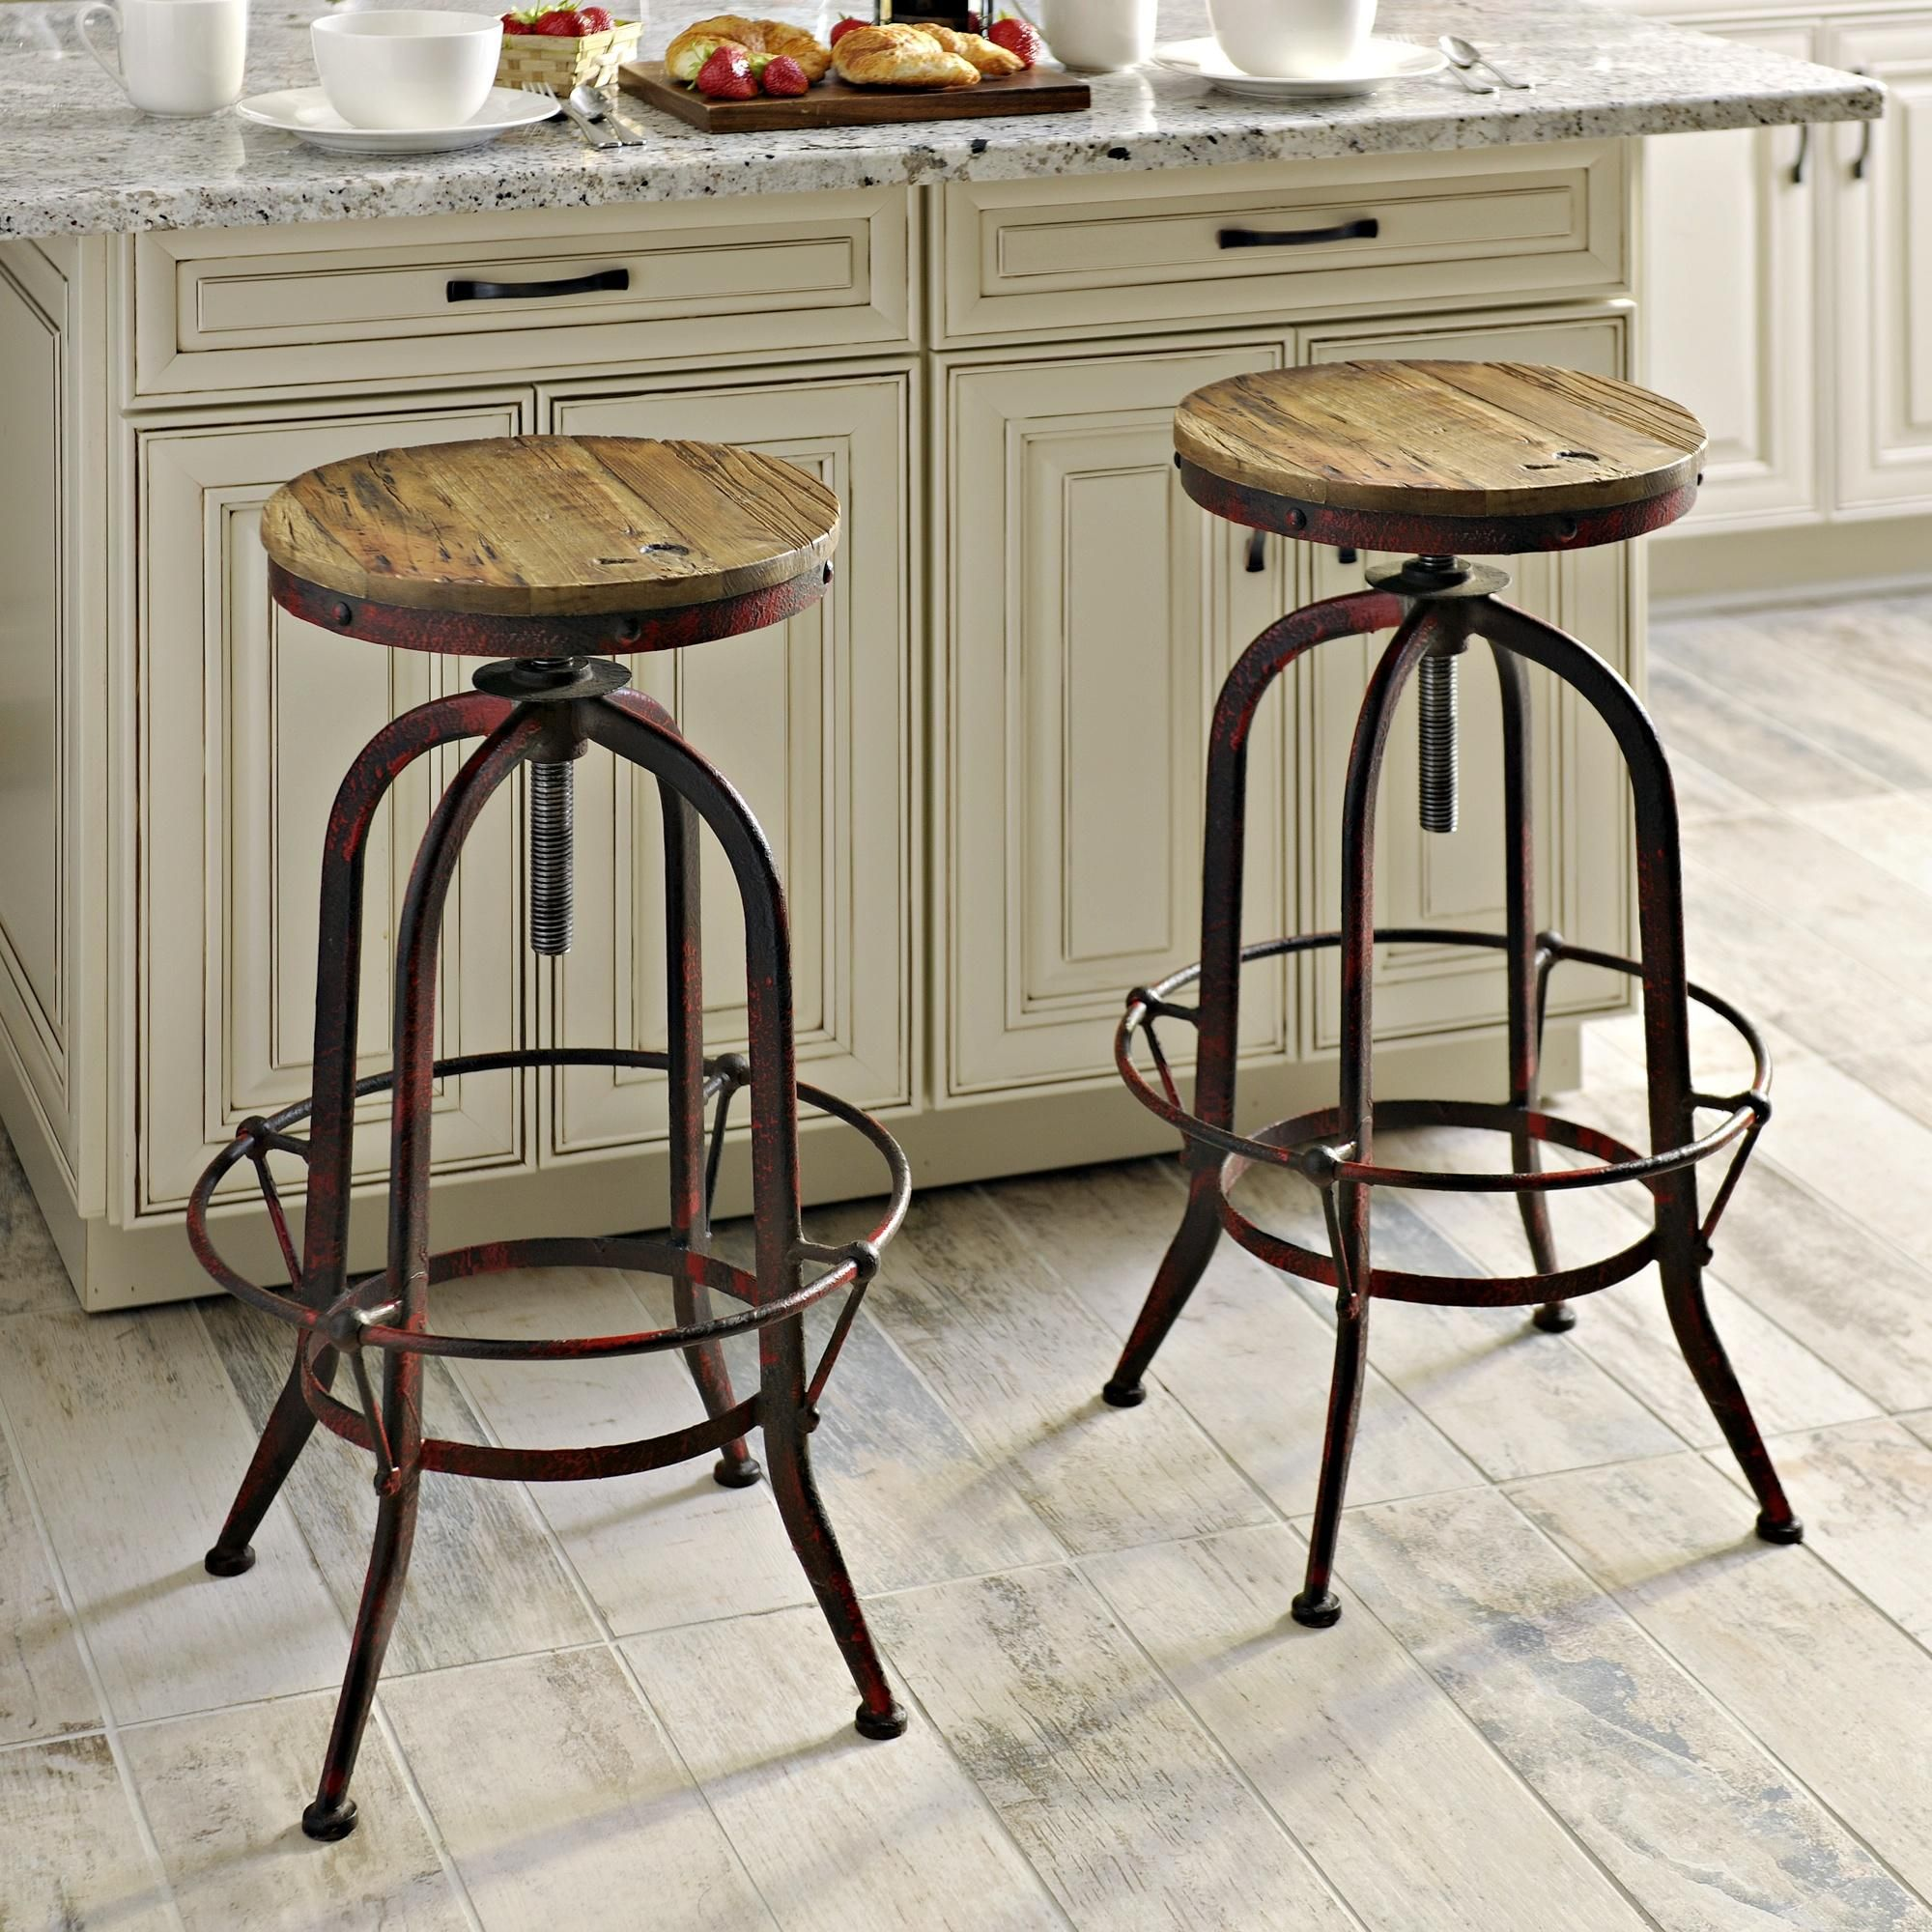 Add Kirkland S Industrial Barstools To Your Kitchen For A Modern Touch That Is Perfect Year Round S Farmhouse Bar Stools Bar Stools Farmhouse Style Bar Stools